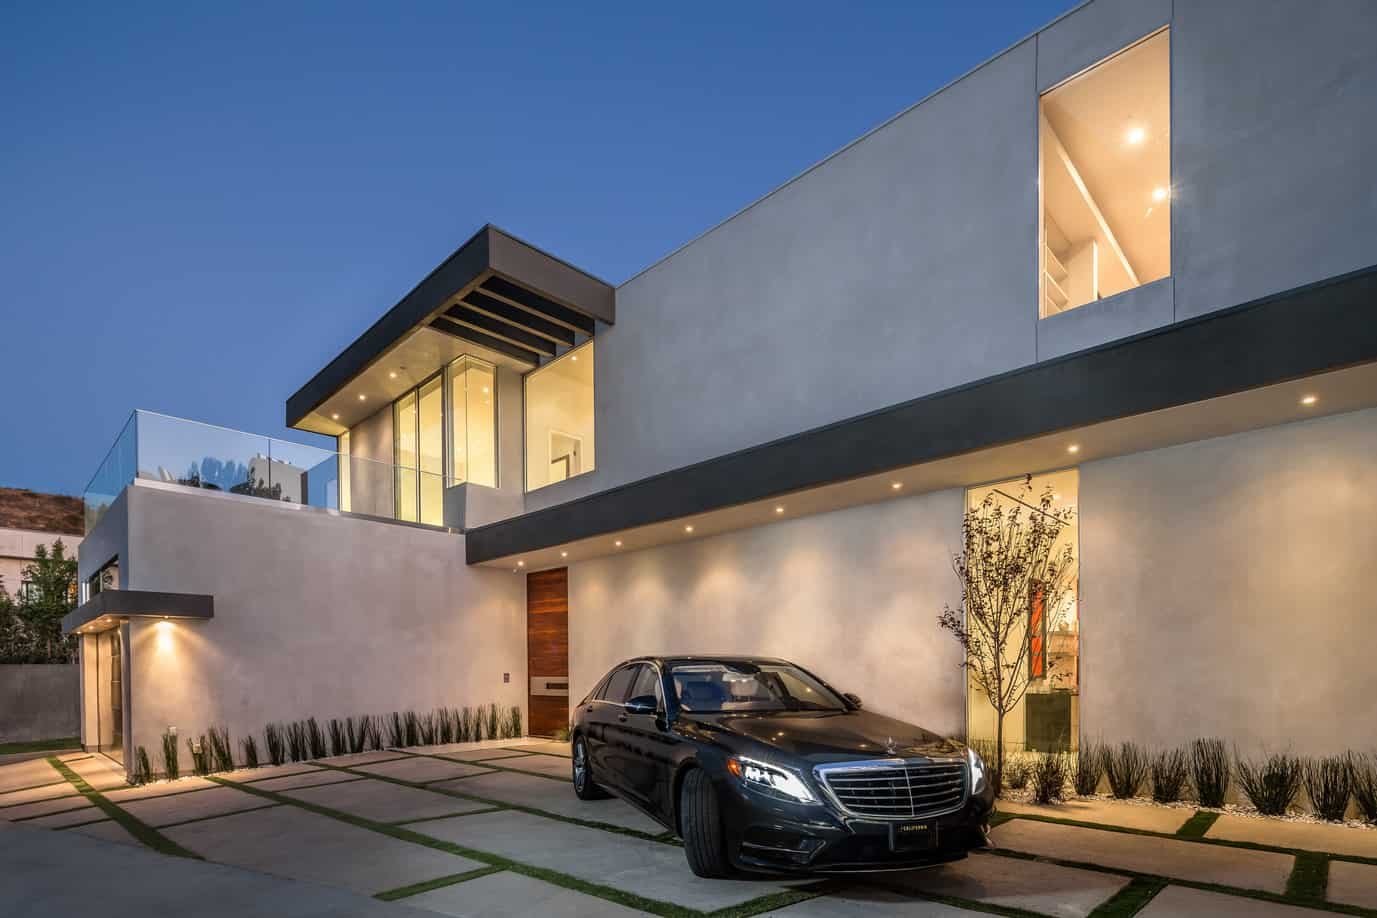 Architecture-Contemporary-Residence-Noesis Group-20-1 Kindesign